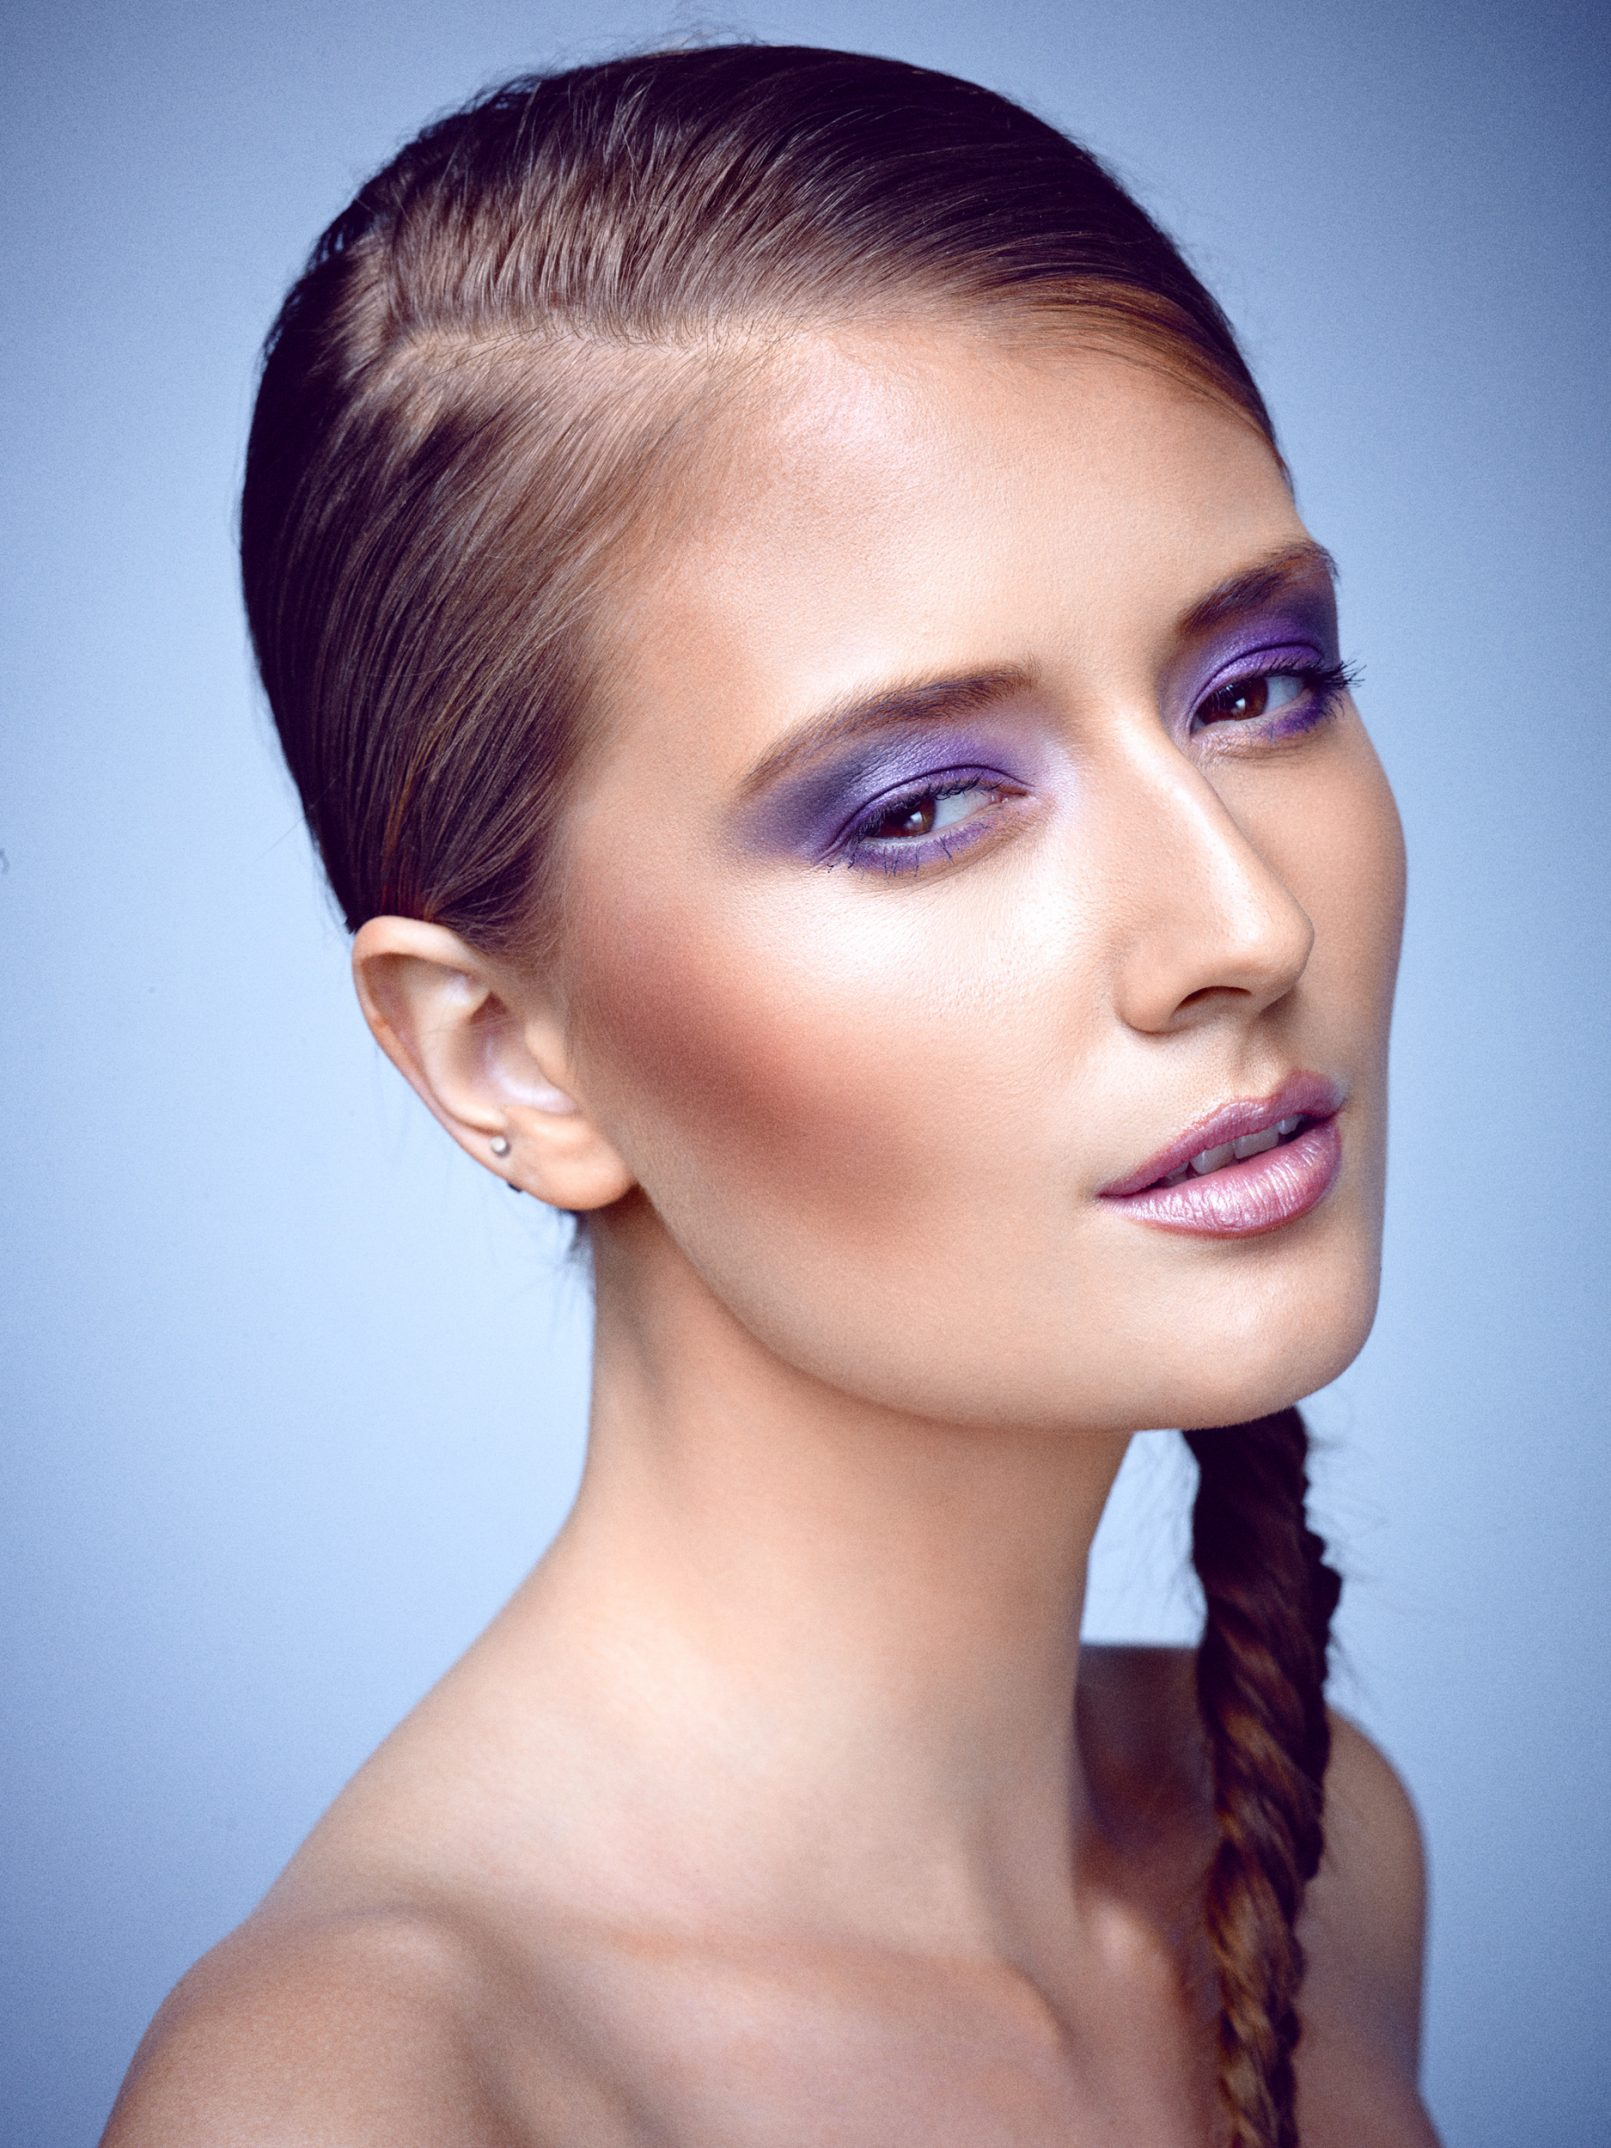 Emily Vienberg Poulsen fotograf christian grüner make-up fletning braid purple lille violet